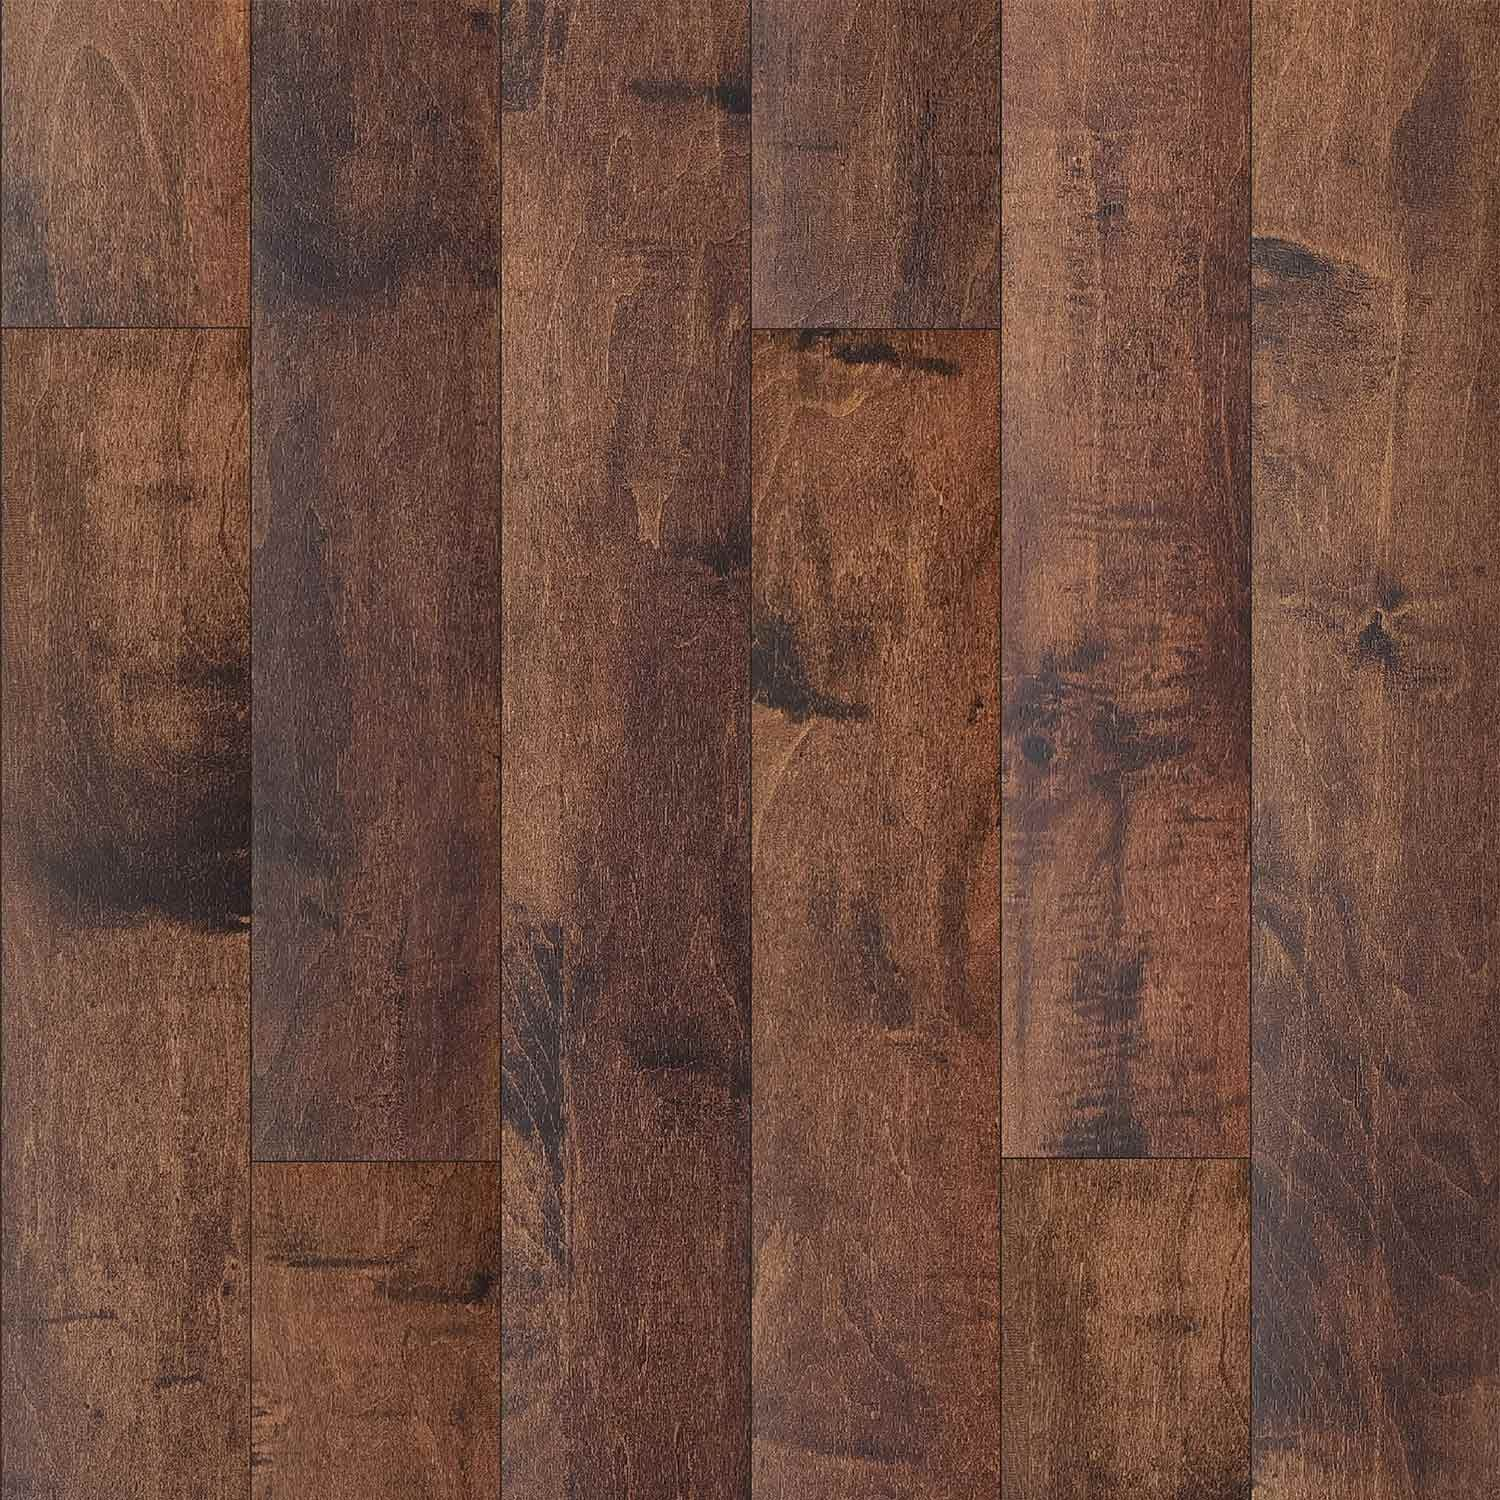 12 3mm Everest Laminate Flooring 19 77, How Many Sq Ft In A Box Of Laminate Flooring